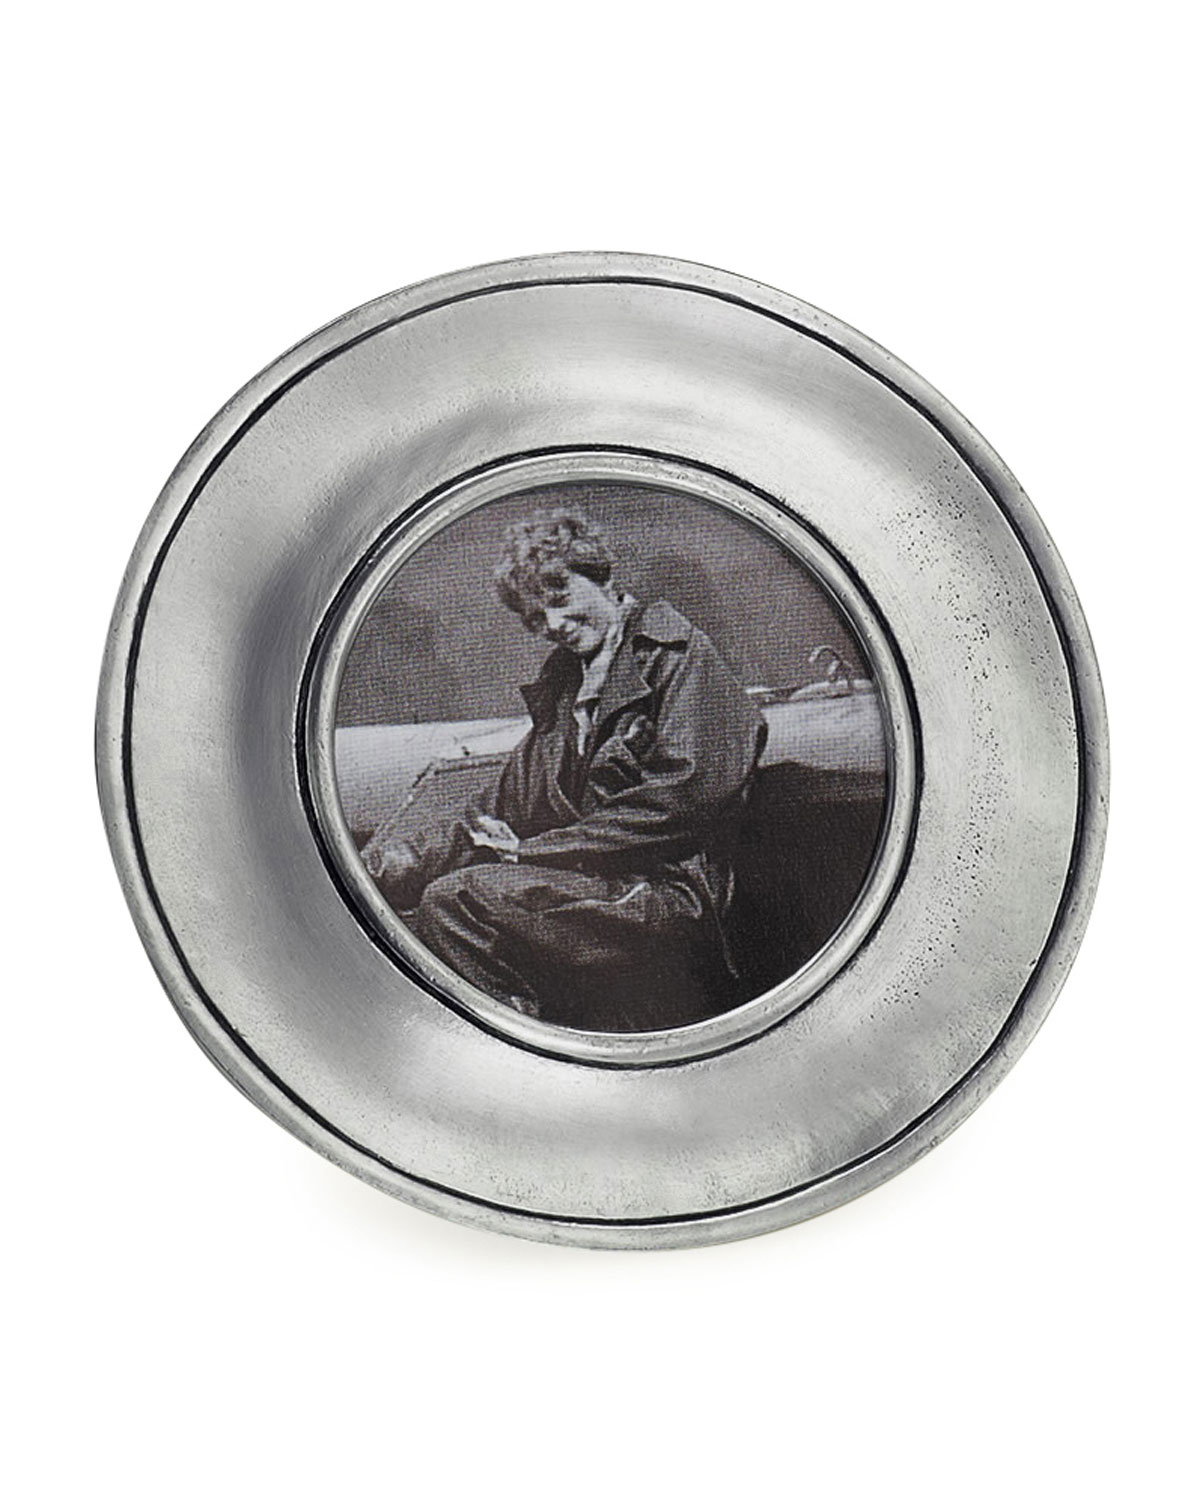 Match Picture frames LOMBARDIA SMALL ROUND PICTURE FRAME